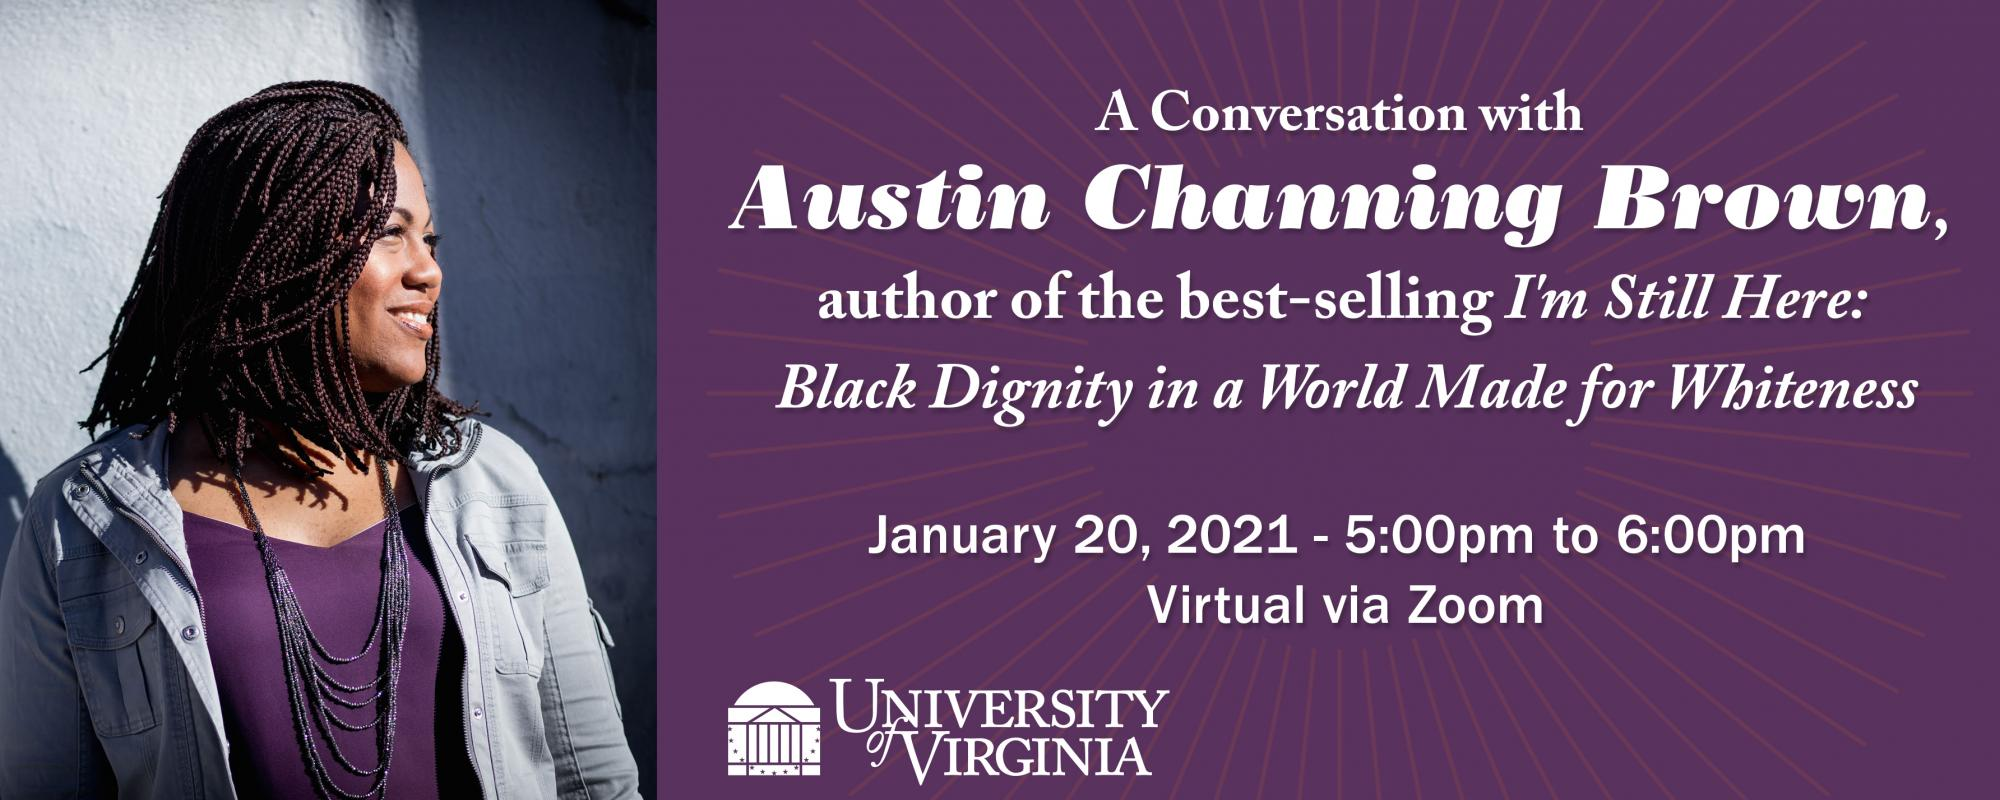 a conversation with Austin Channing Brown, author  author of the best-selling I'm Still Here: Black Dignity in a World Made for Whiteness